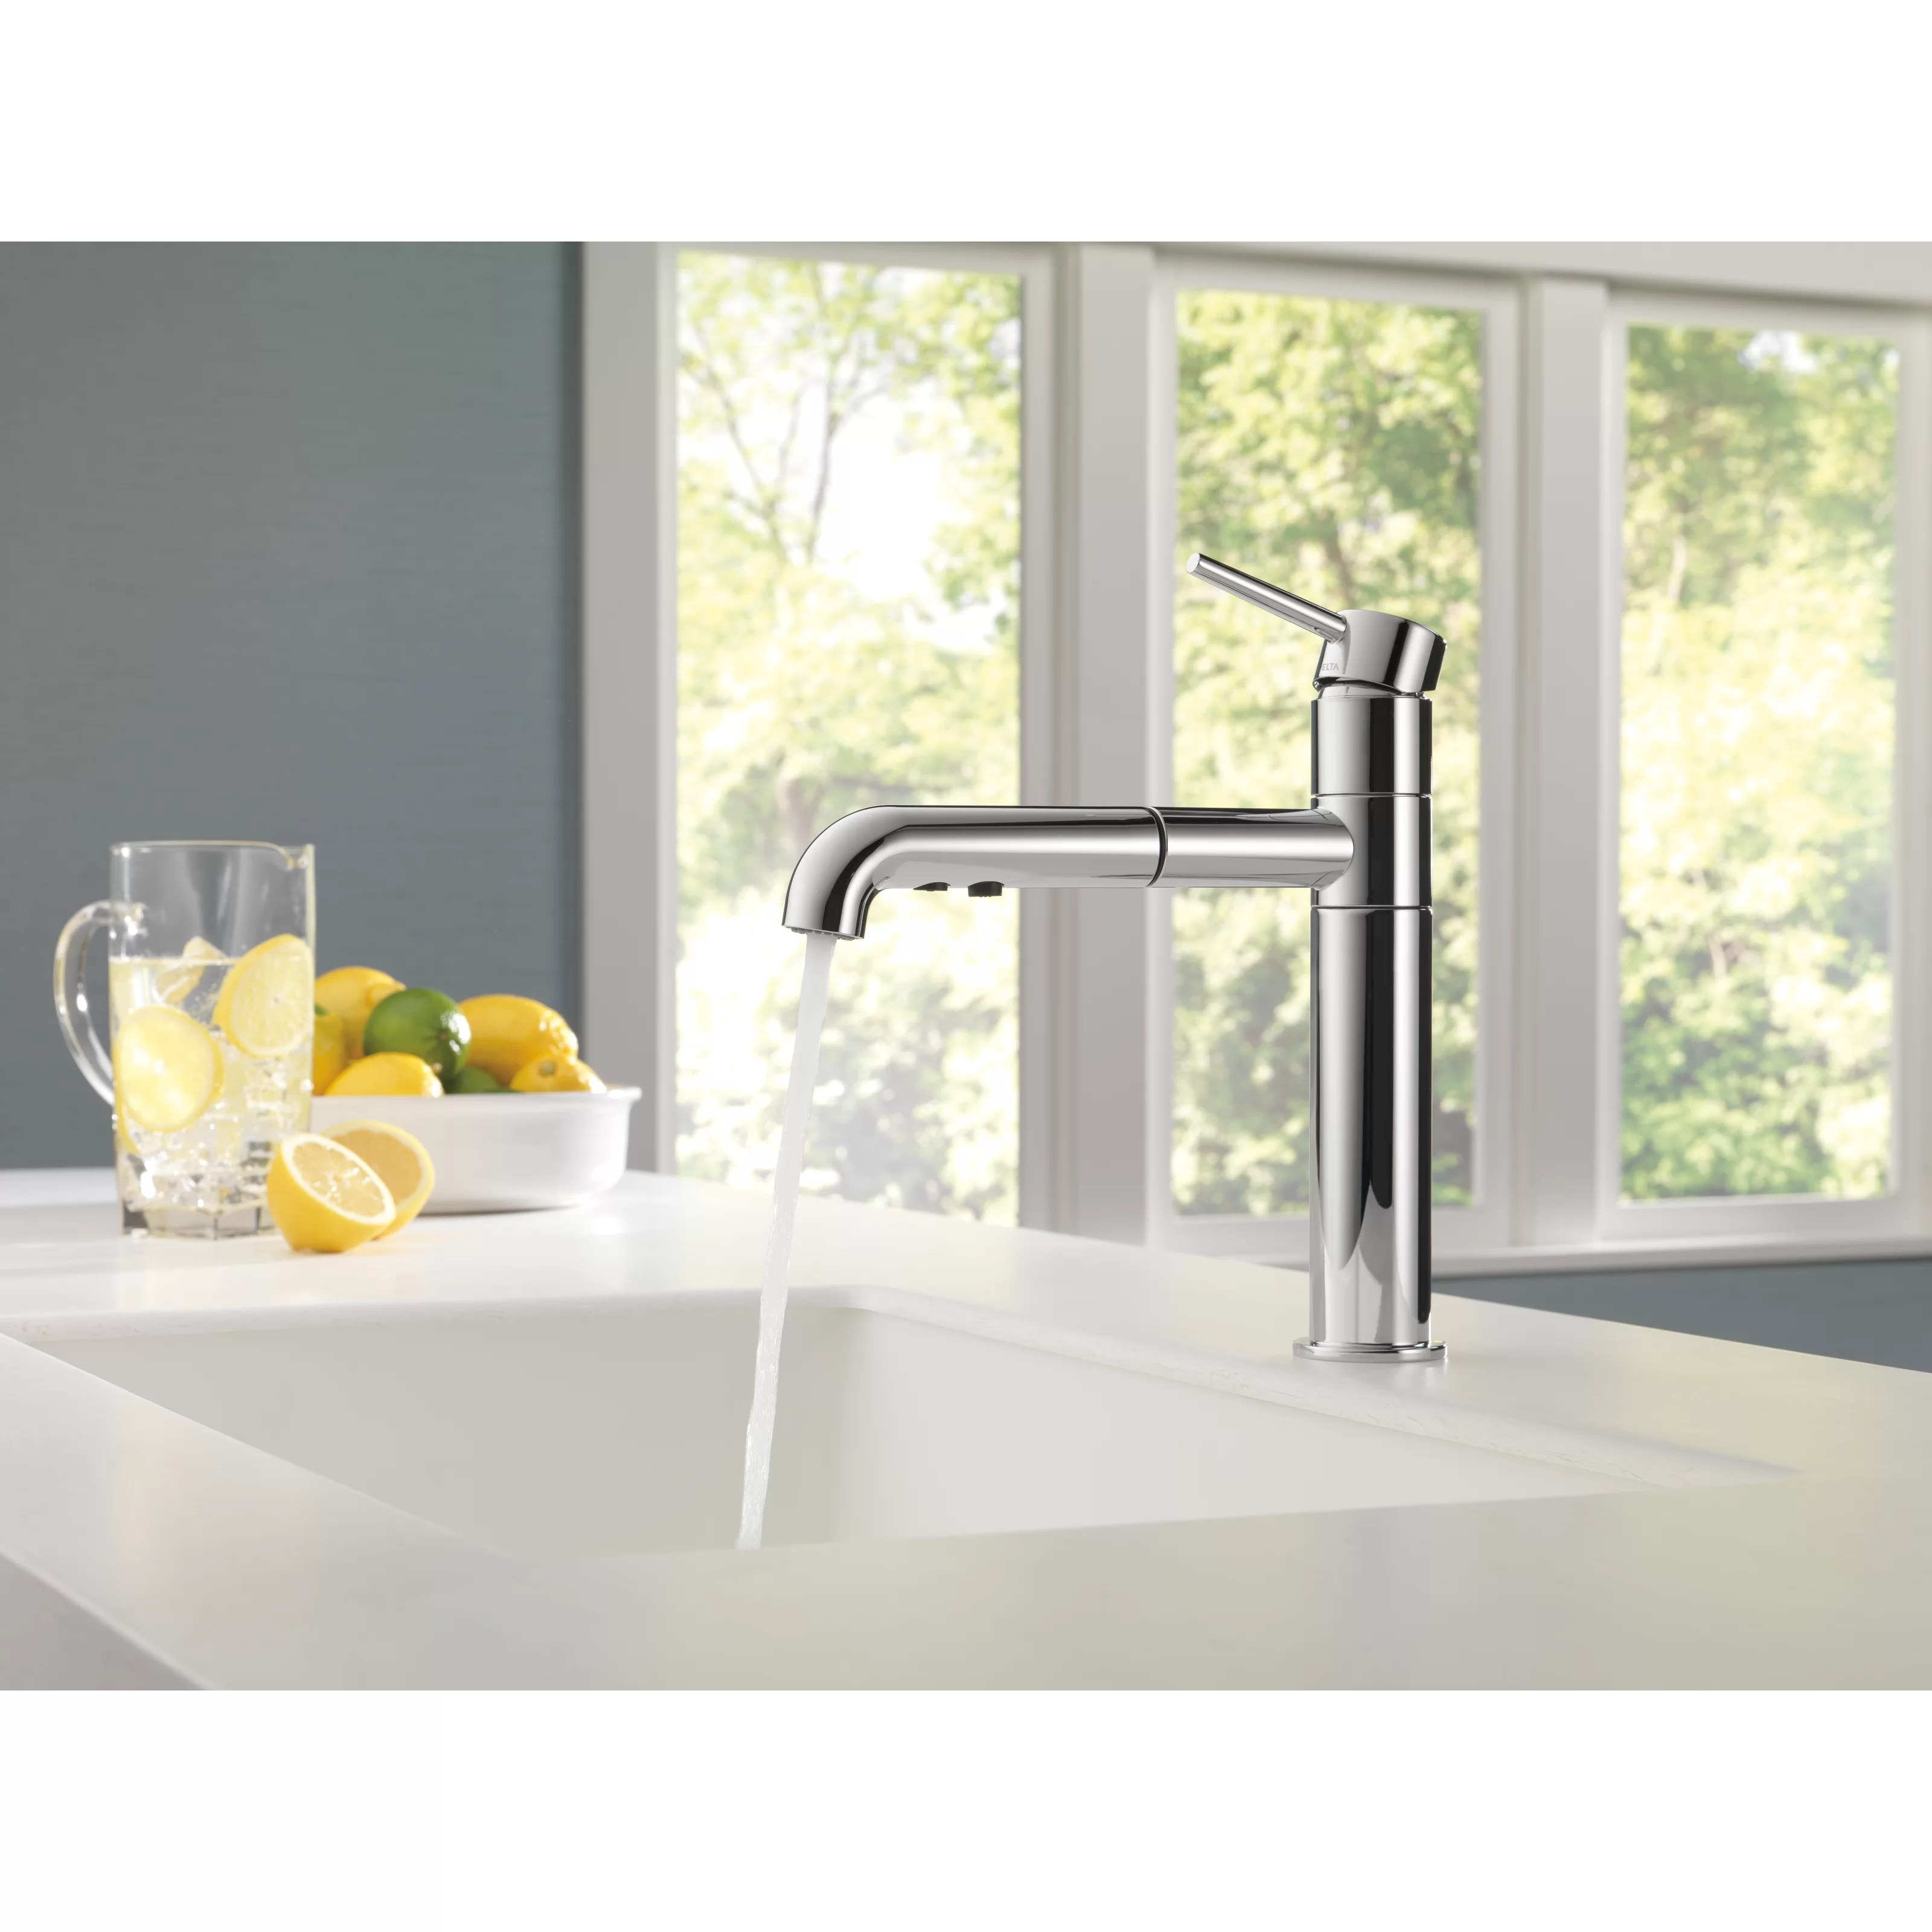 Delta Trinsic C2 AE Kitchen Single Handle Pull Out Standard Kitchen Faucet DLT delta trinsic kitchen faucet Delta Trinsic reg Kitchen Single Handle Pull Out Standard Kitchen Faucet